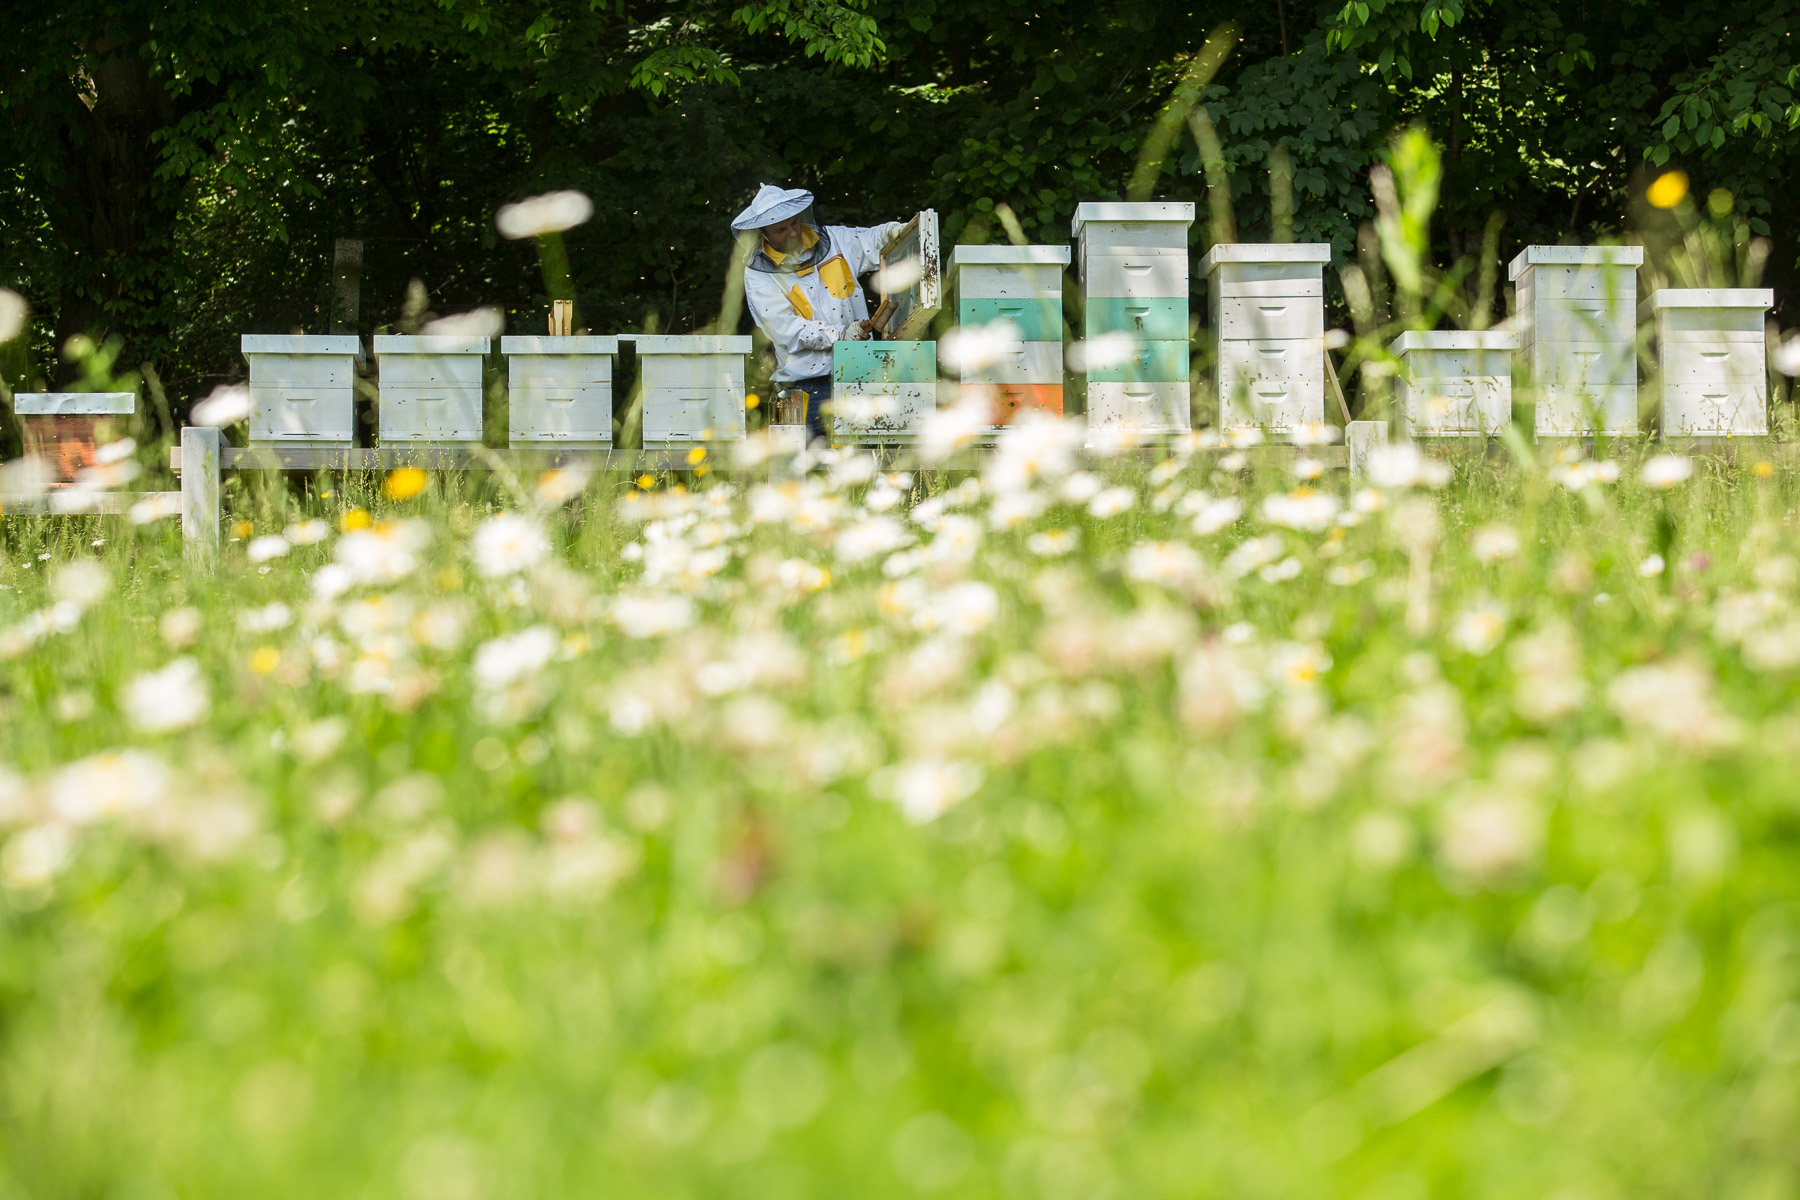 Urban Beekeeper Damir Škraban inspects the beehives located in the Tivoli Park in Ljubljana, next to a meadow full of flowers.